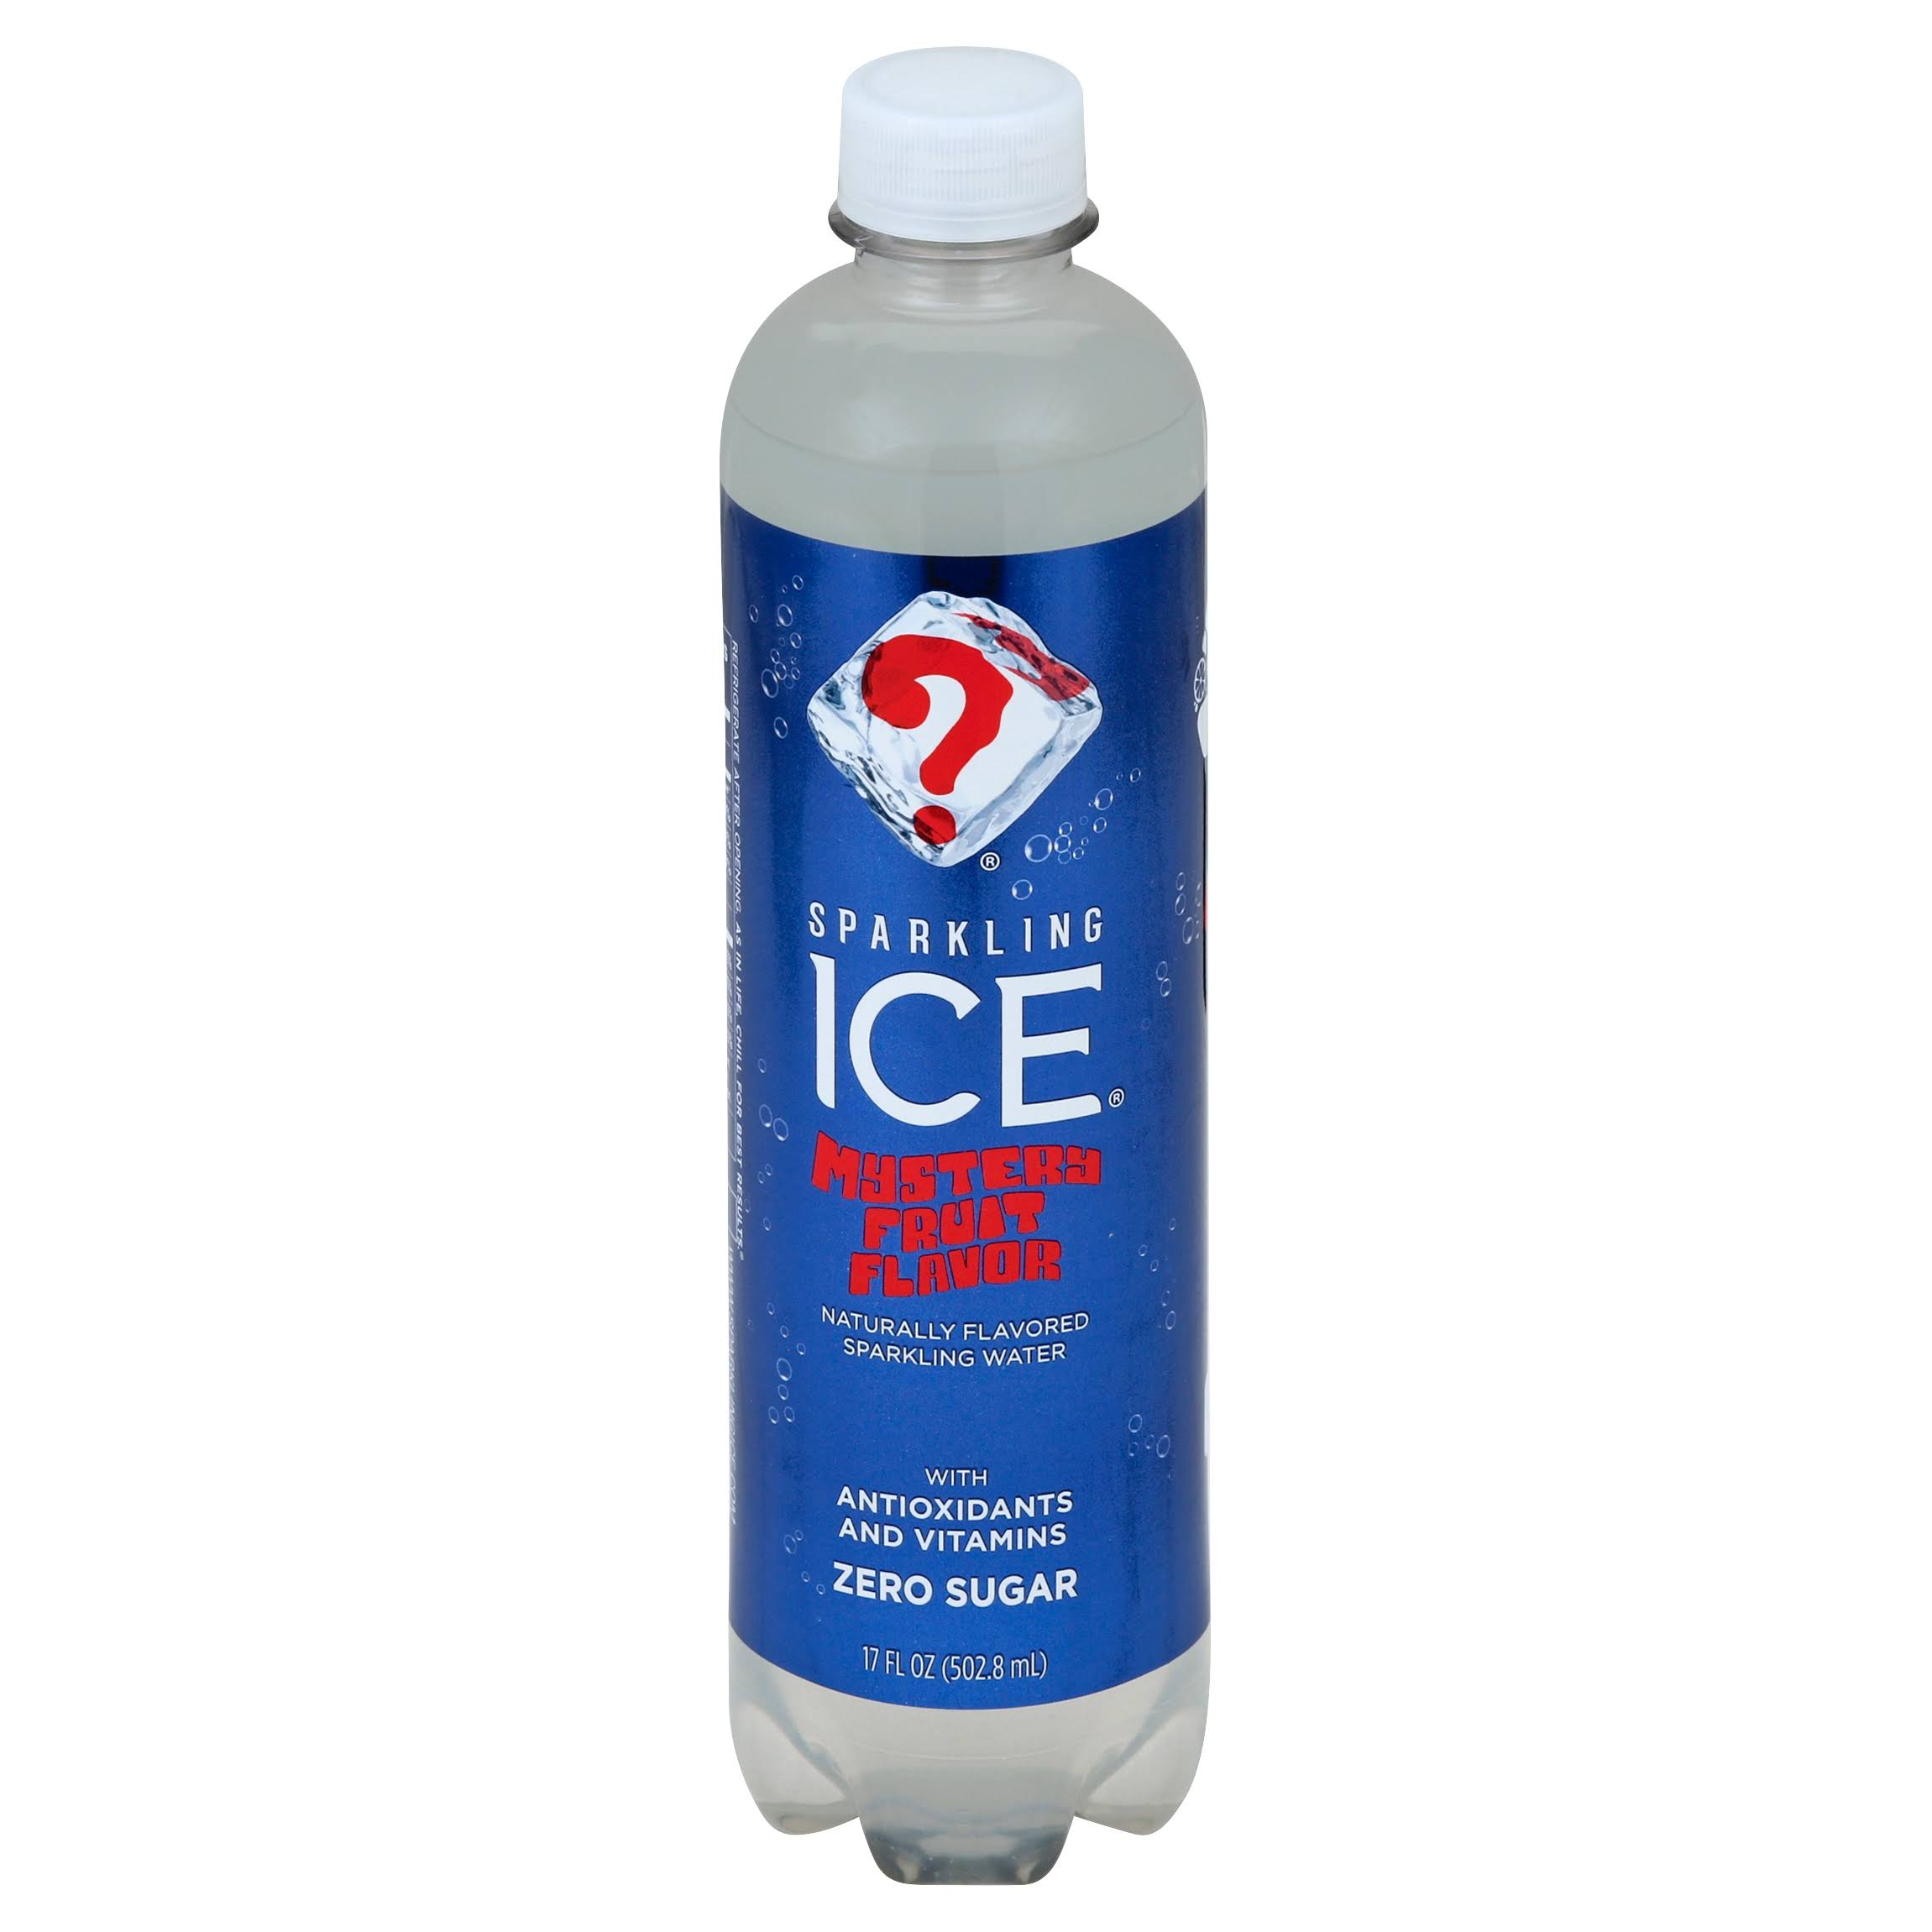 Sparkling Ice Sparkling Water, Mystery Fruit - 17 fl oz bottle